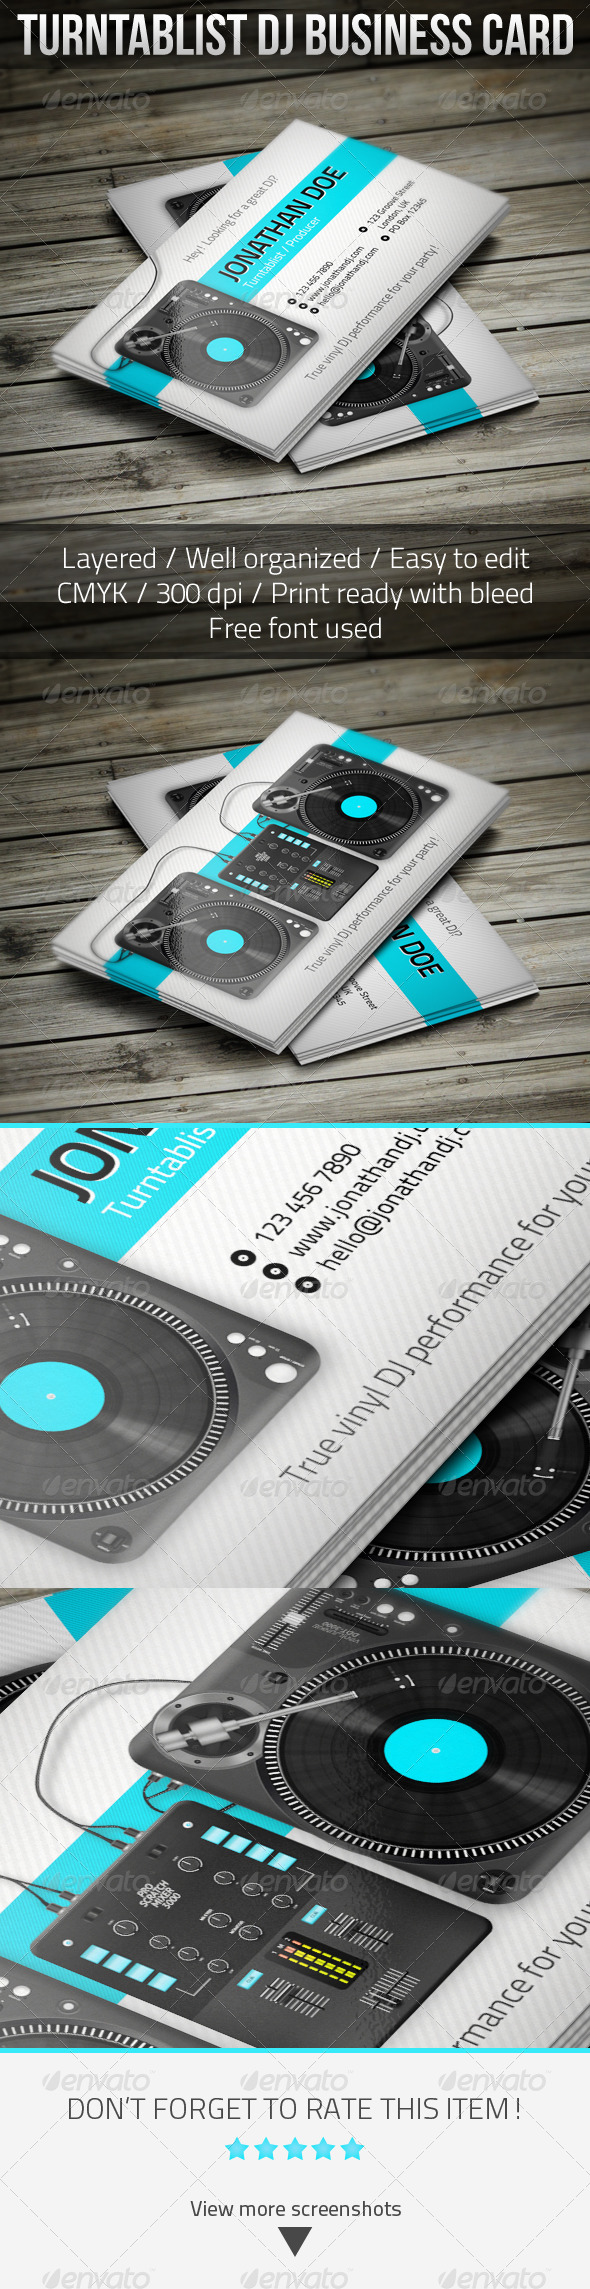 Turntablist DJ Business Card - Industry Specific Business Cards